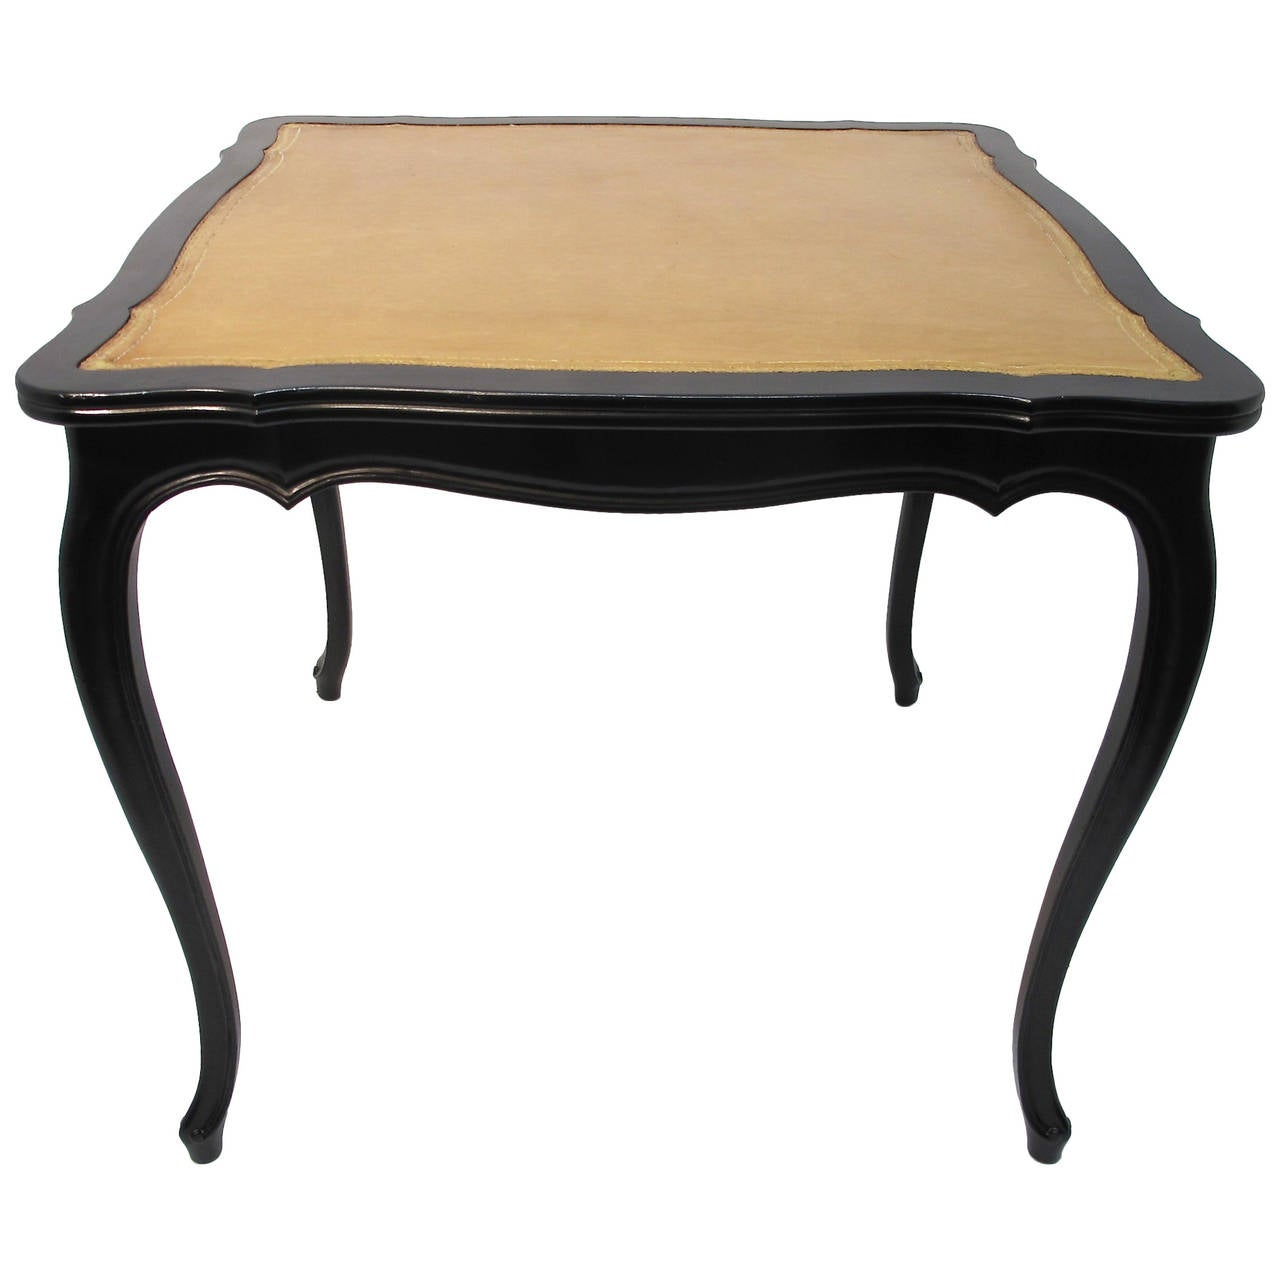 Louis xv style game table at 1stdibs - Table louis xv ...